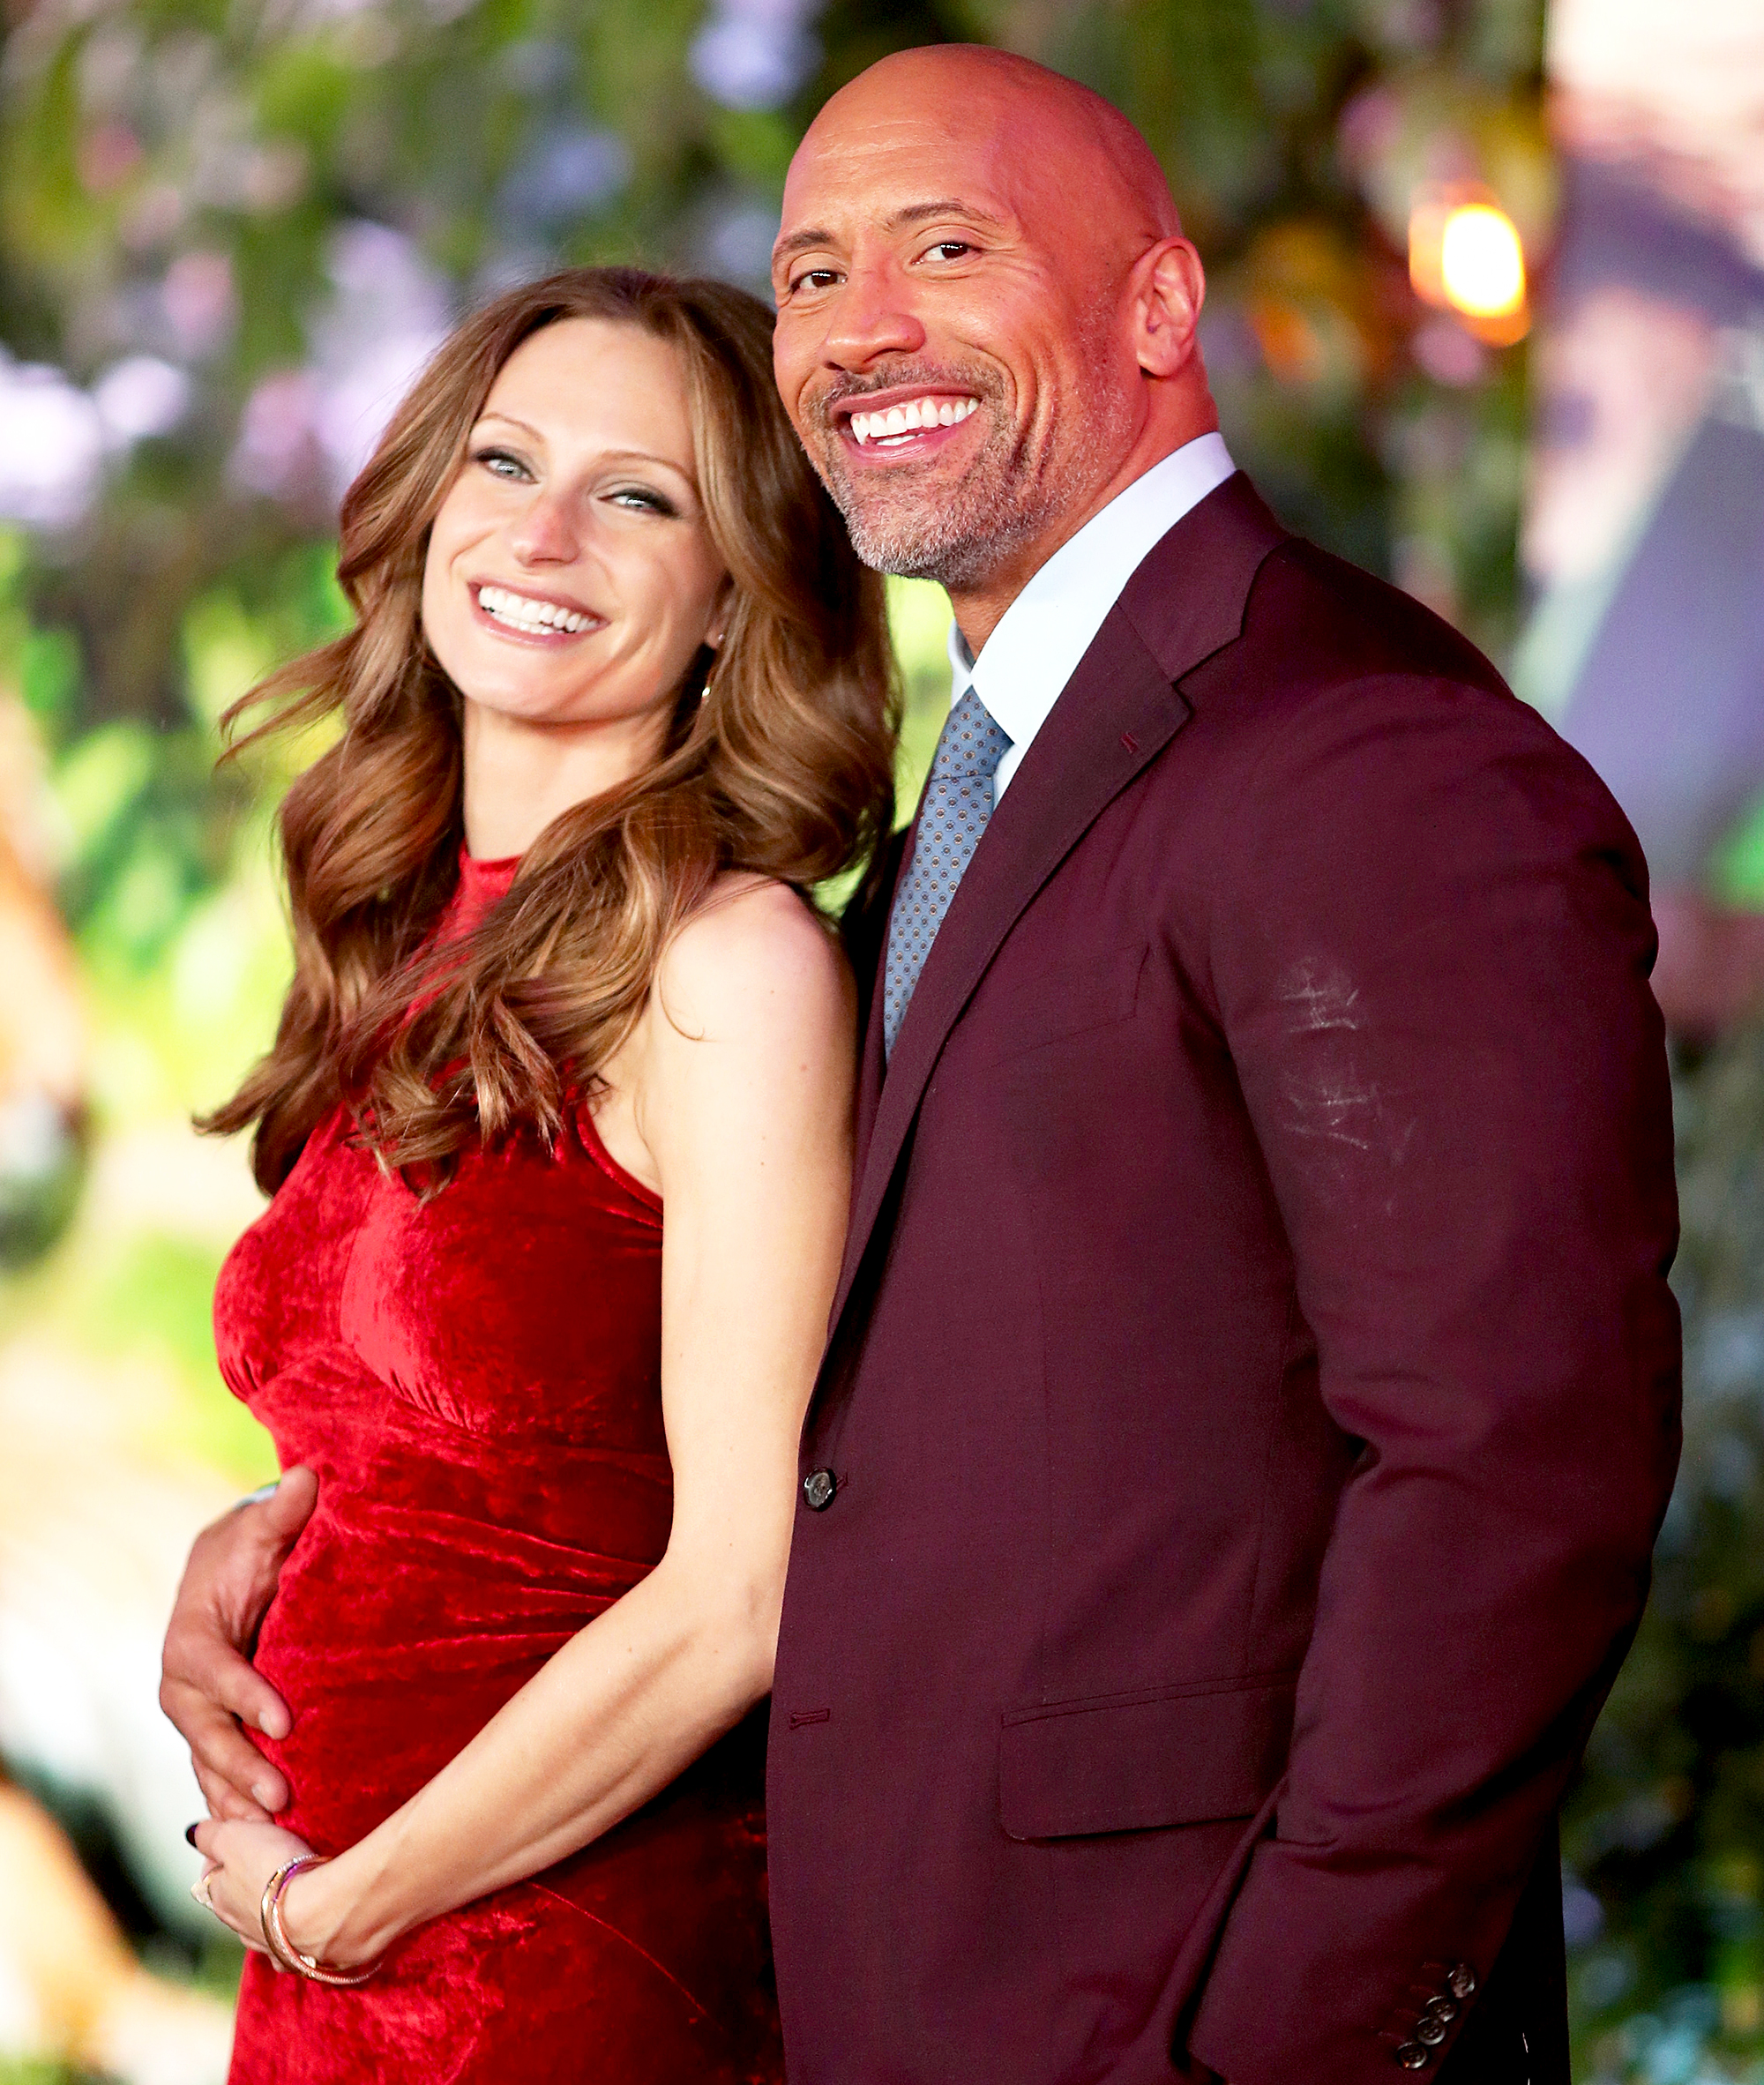 The Internet Is Singing The Rock's Praises For Feeding His Breastfeeding Girlfriend